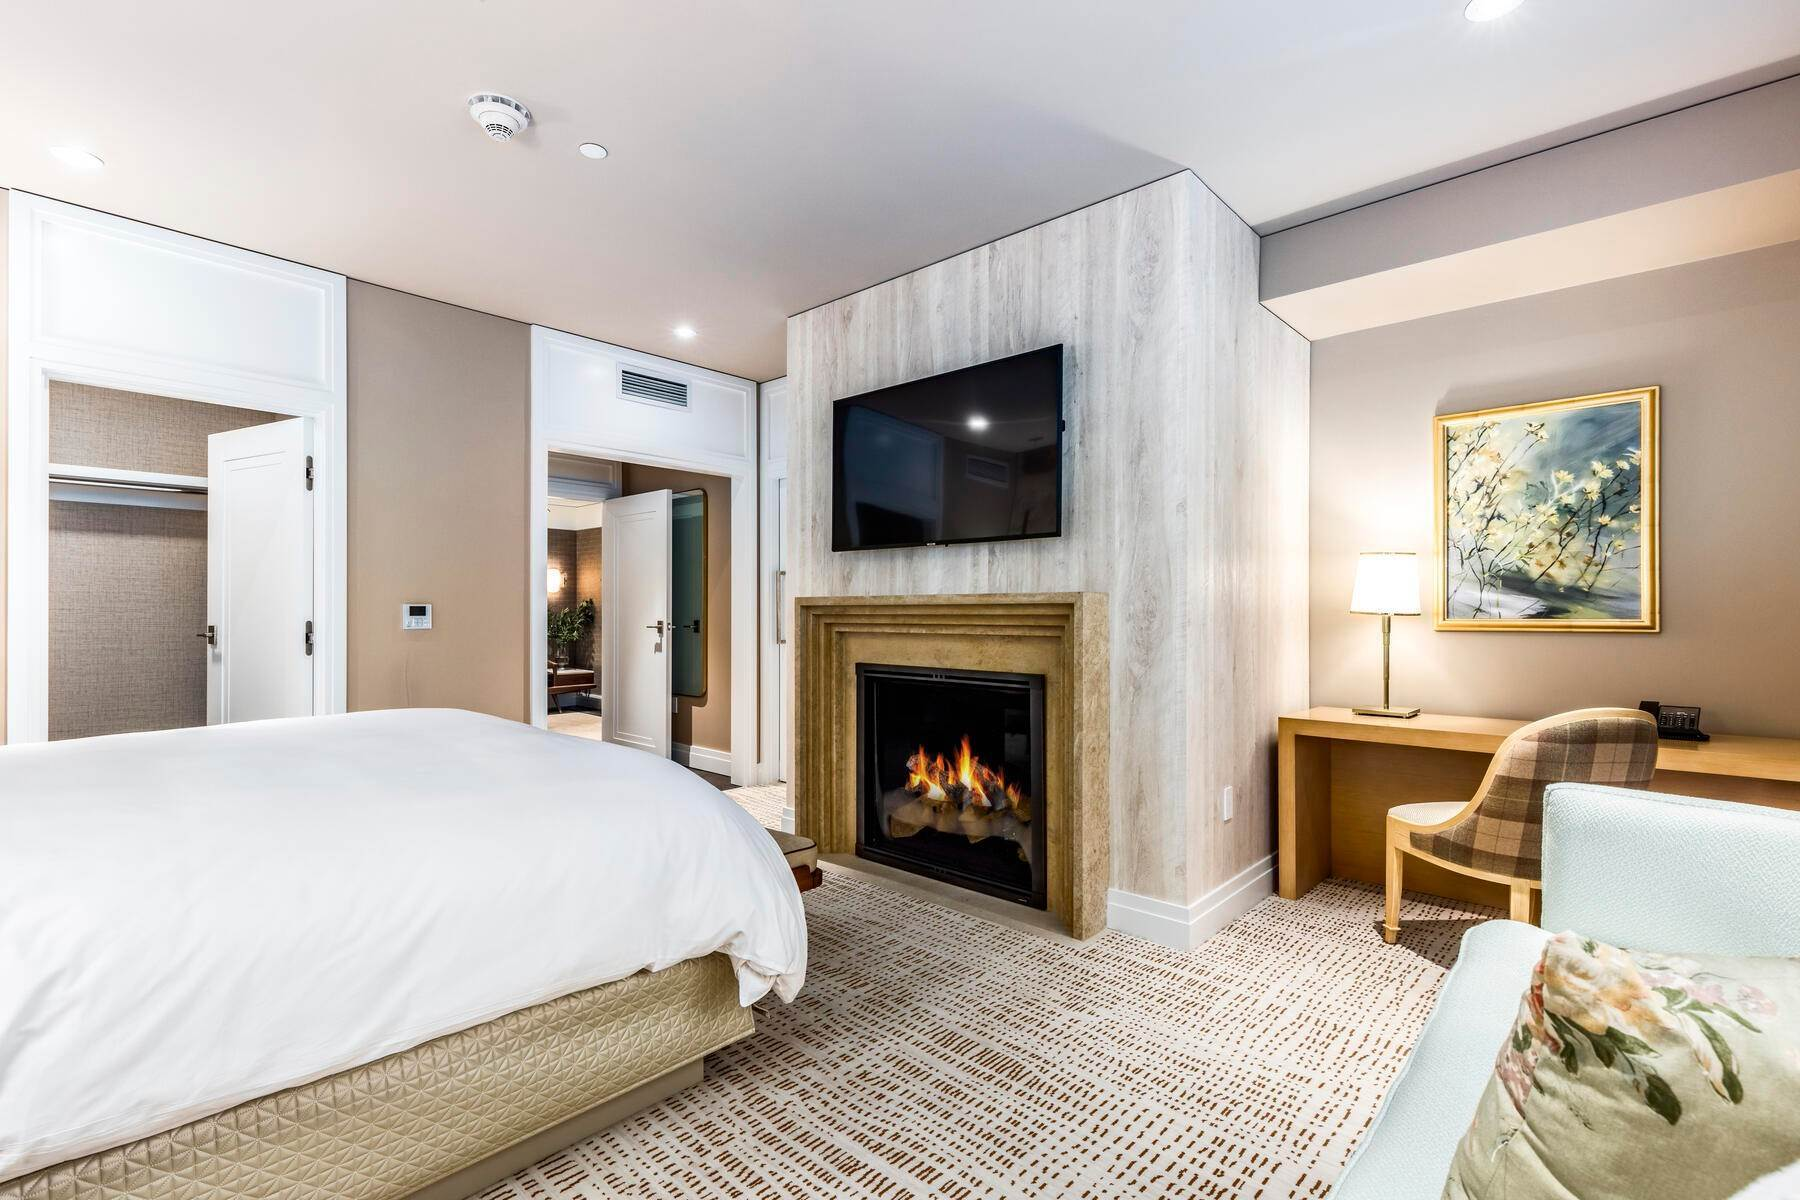 14. Condominiums for Sale at Boutique Luxury Hotel Residences in Prime Deer Valley Silver Lake Village 7520 Royal Street #321 Park City, Utah 84060 United States